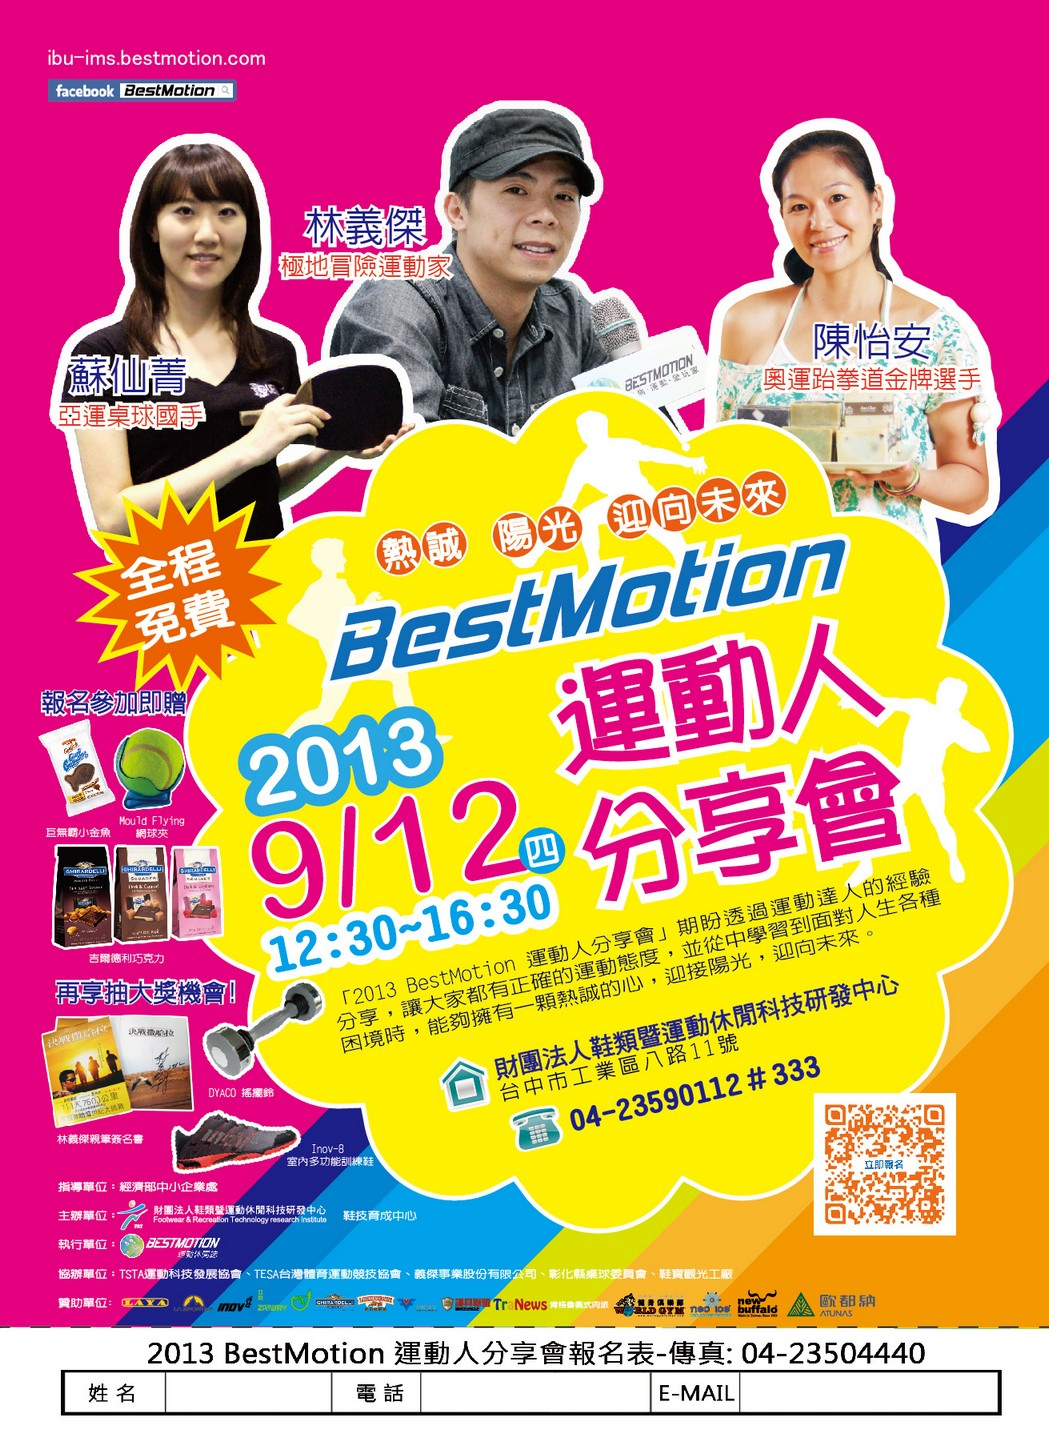 20130912 2013 BestMotion